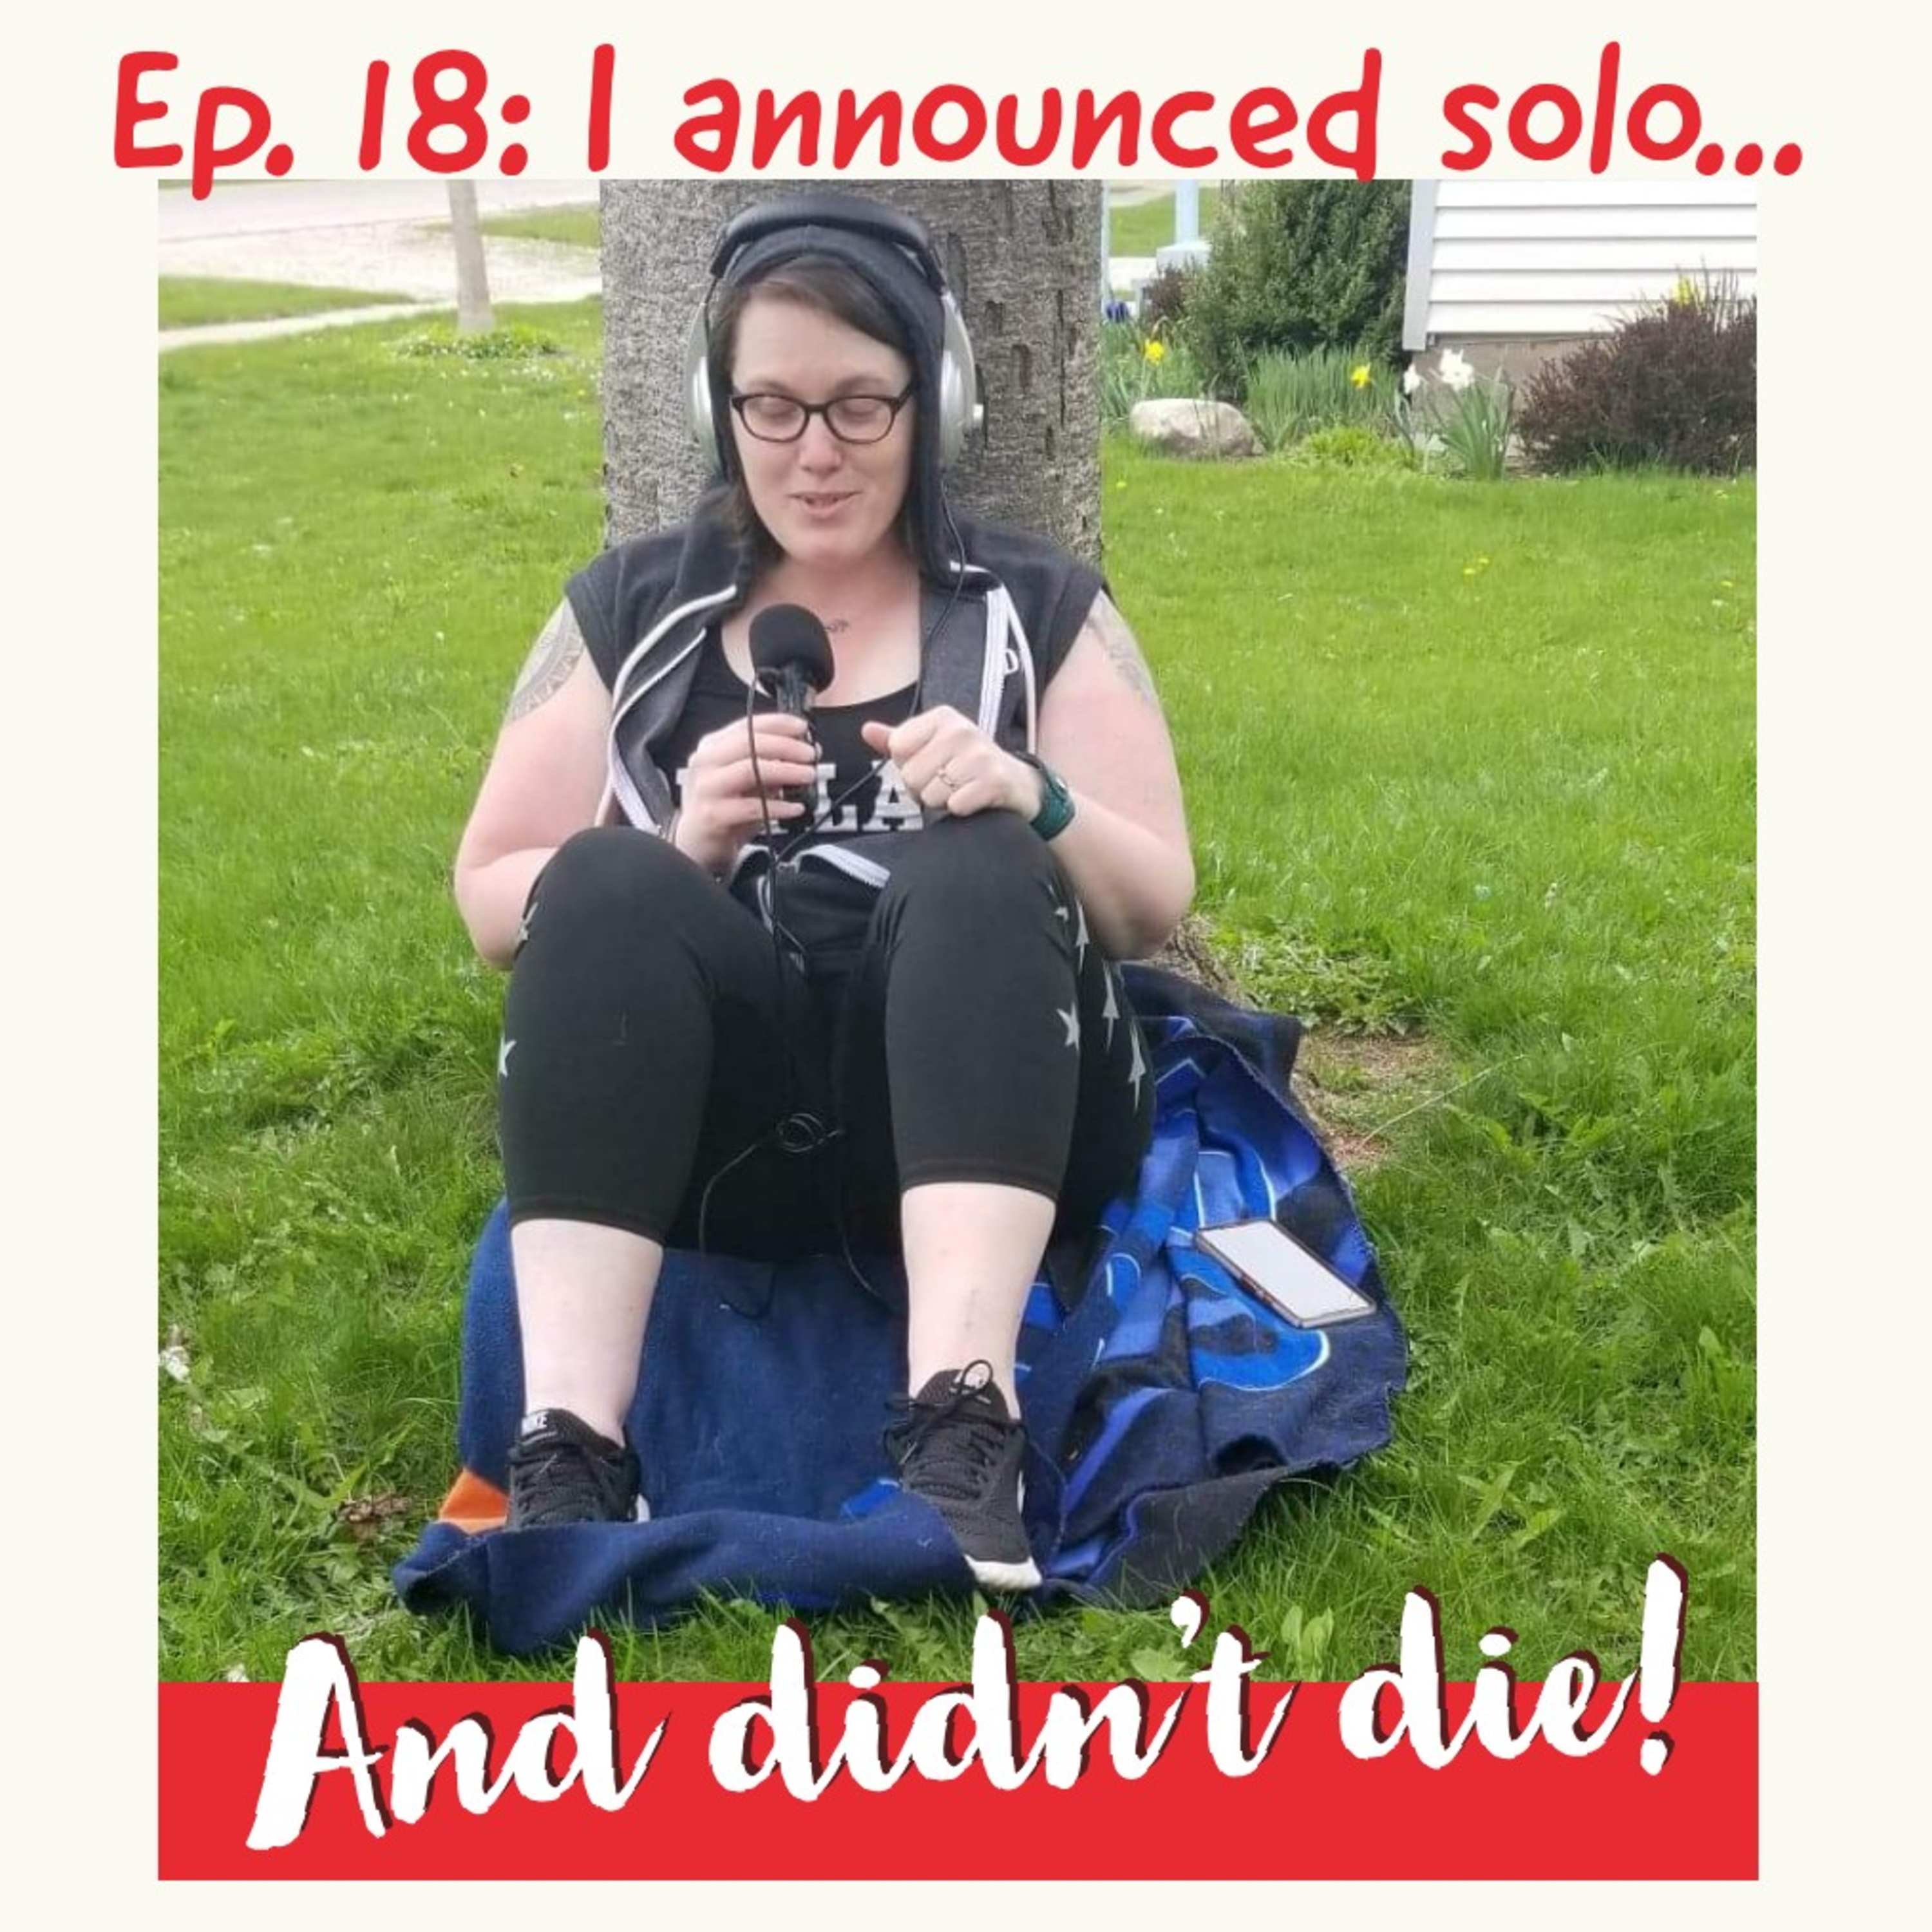 Ep. 18: I announced solo... and did die!